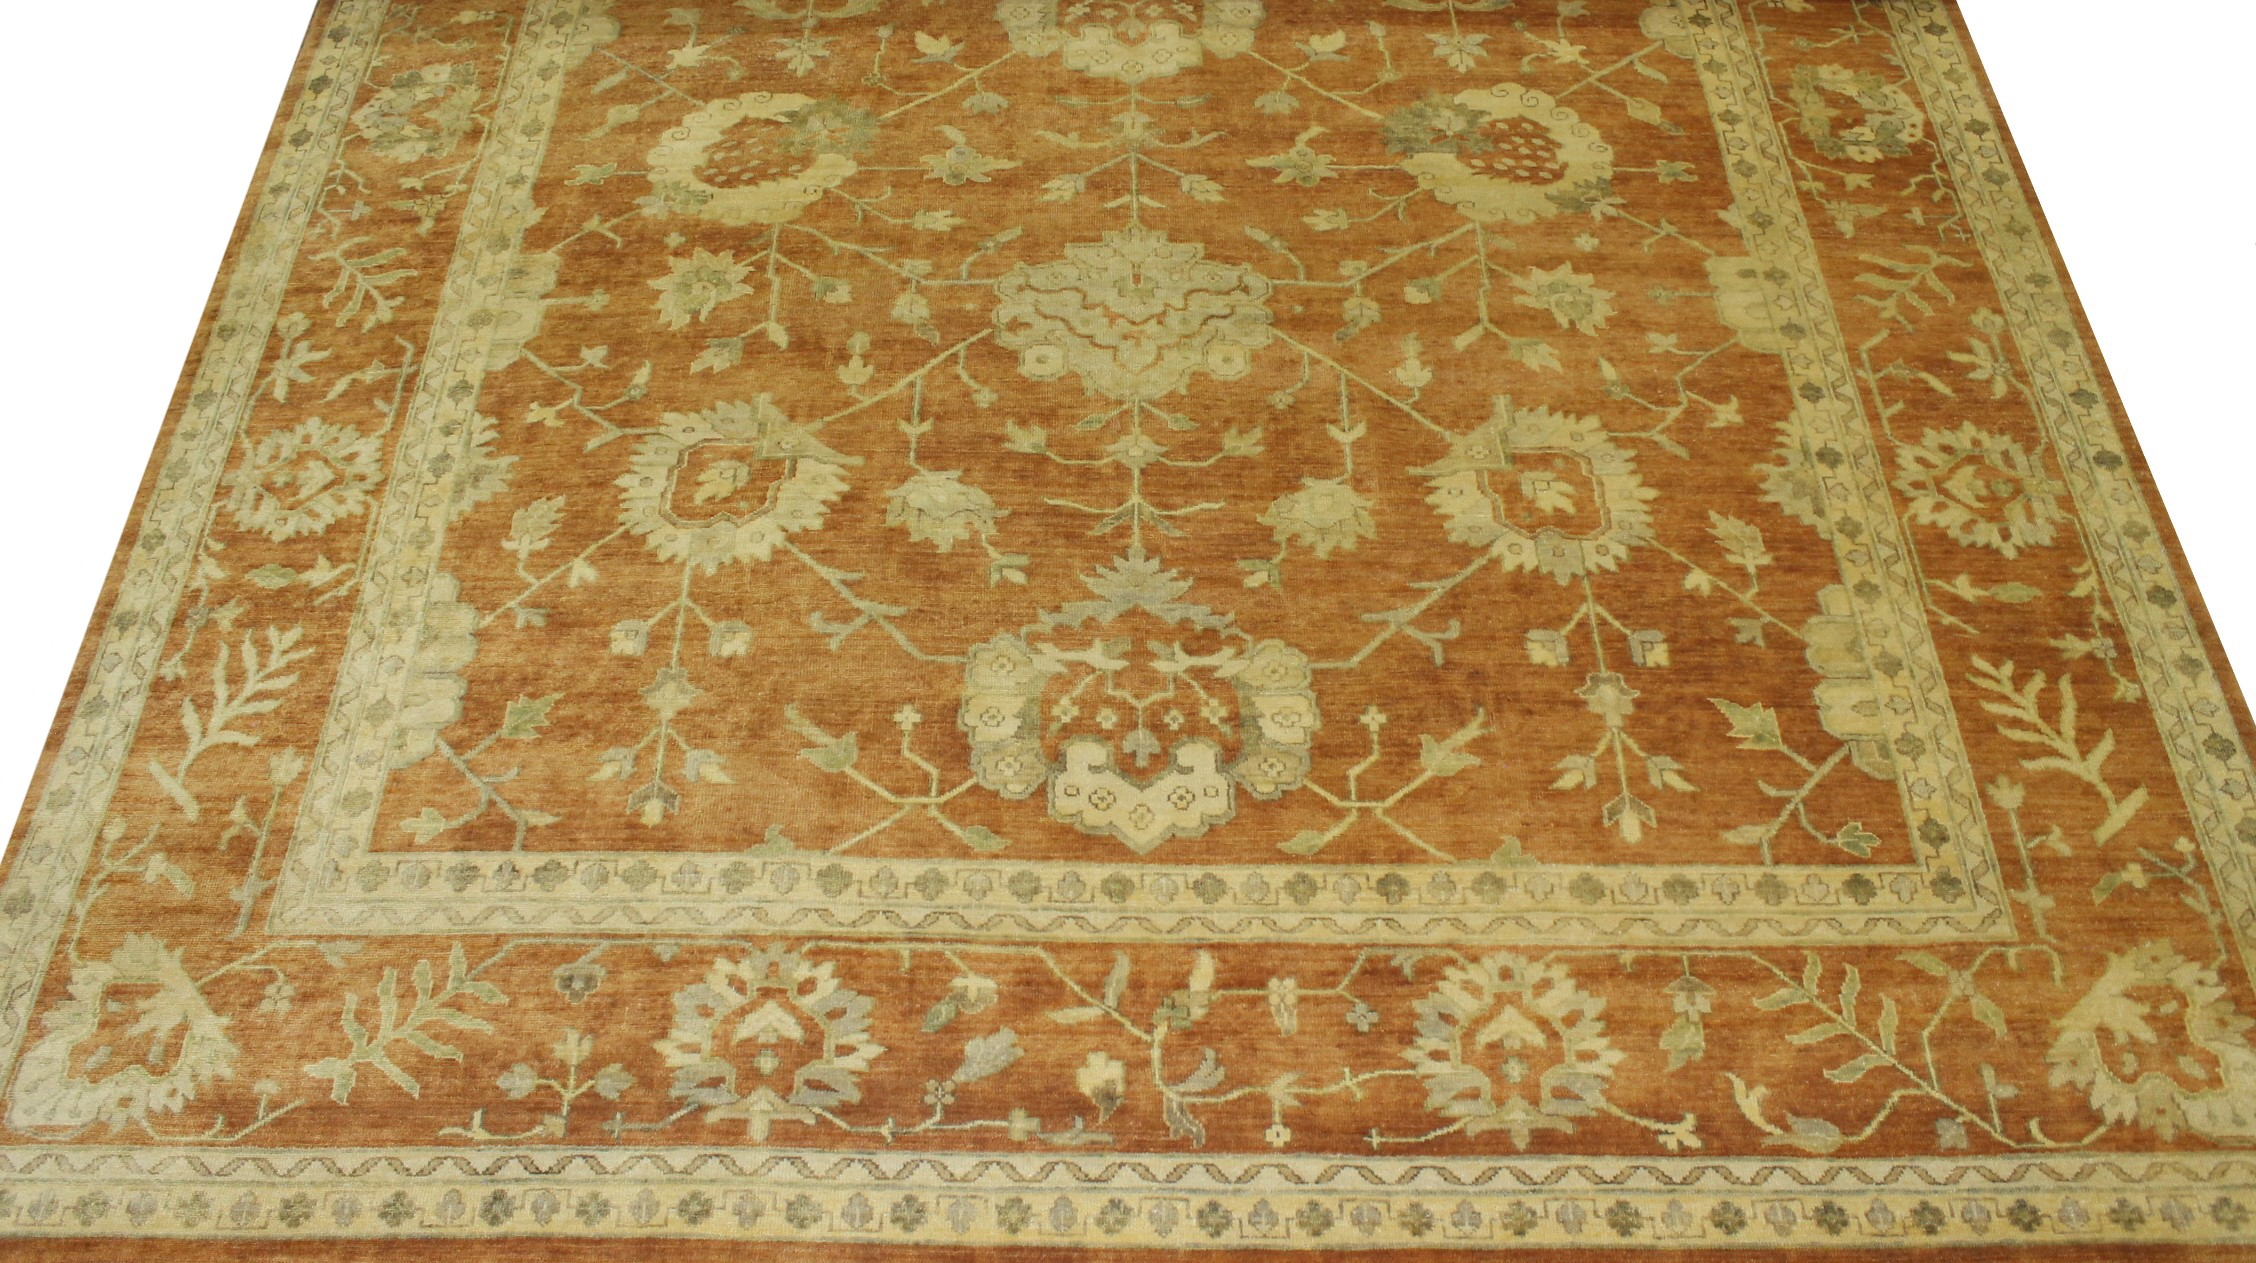 10x14 Oushak Hand Knotted Wool Area Rug - MR11663